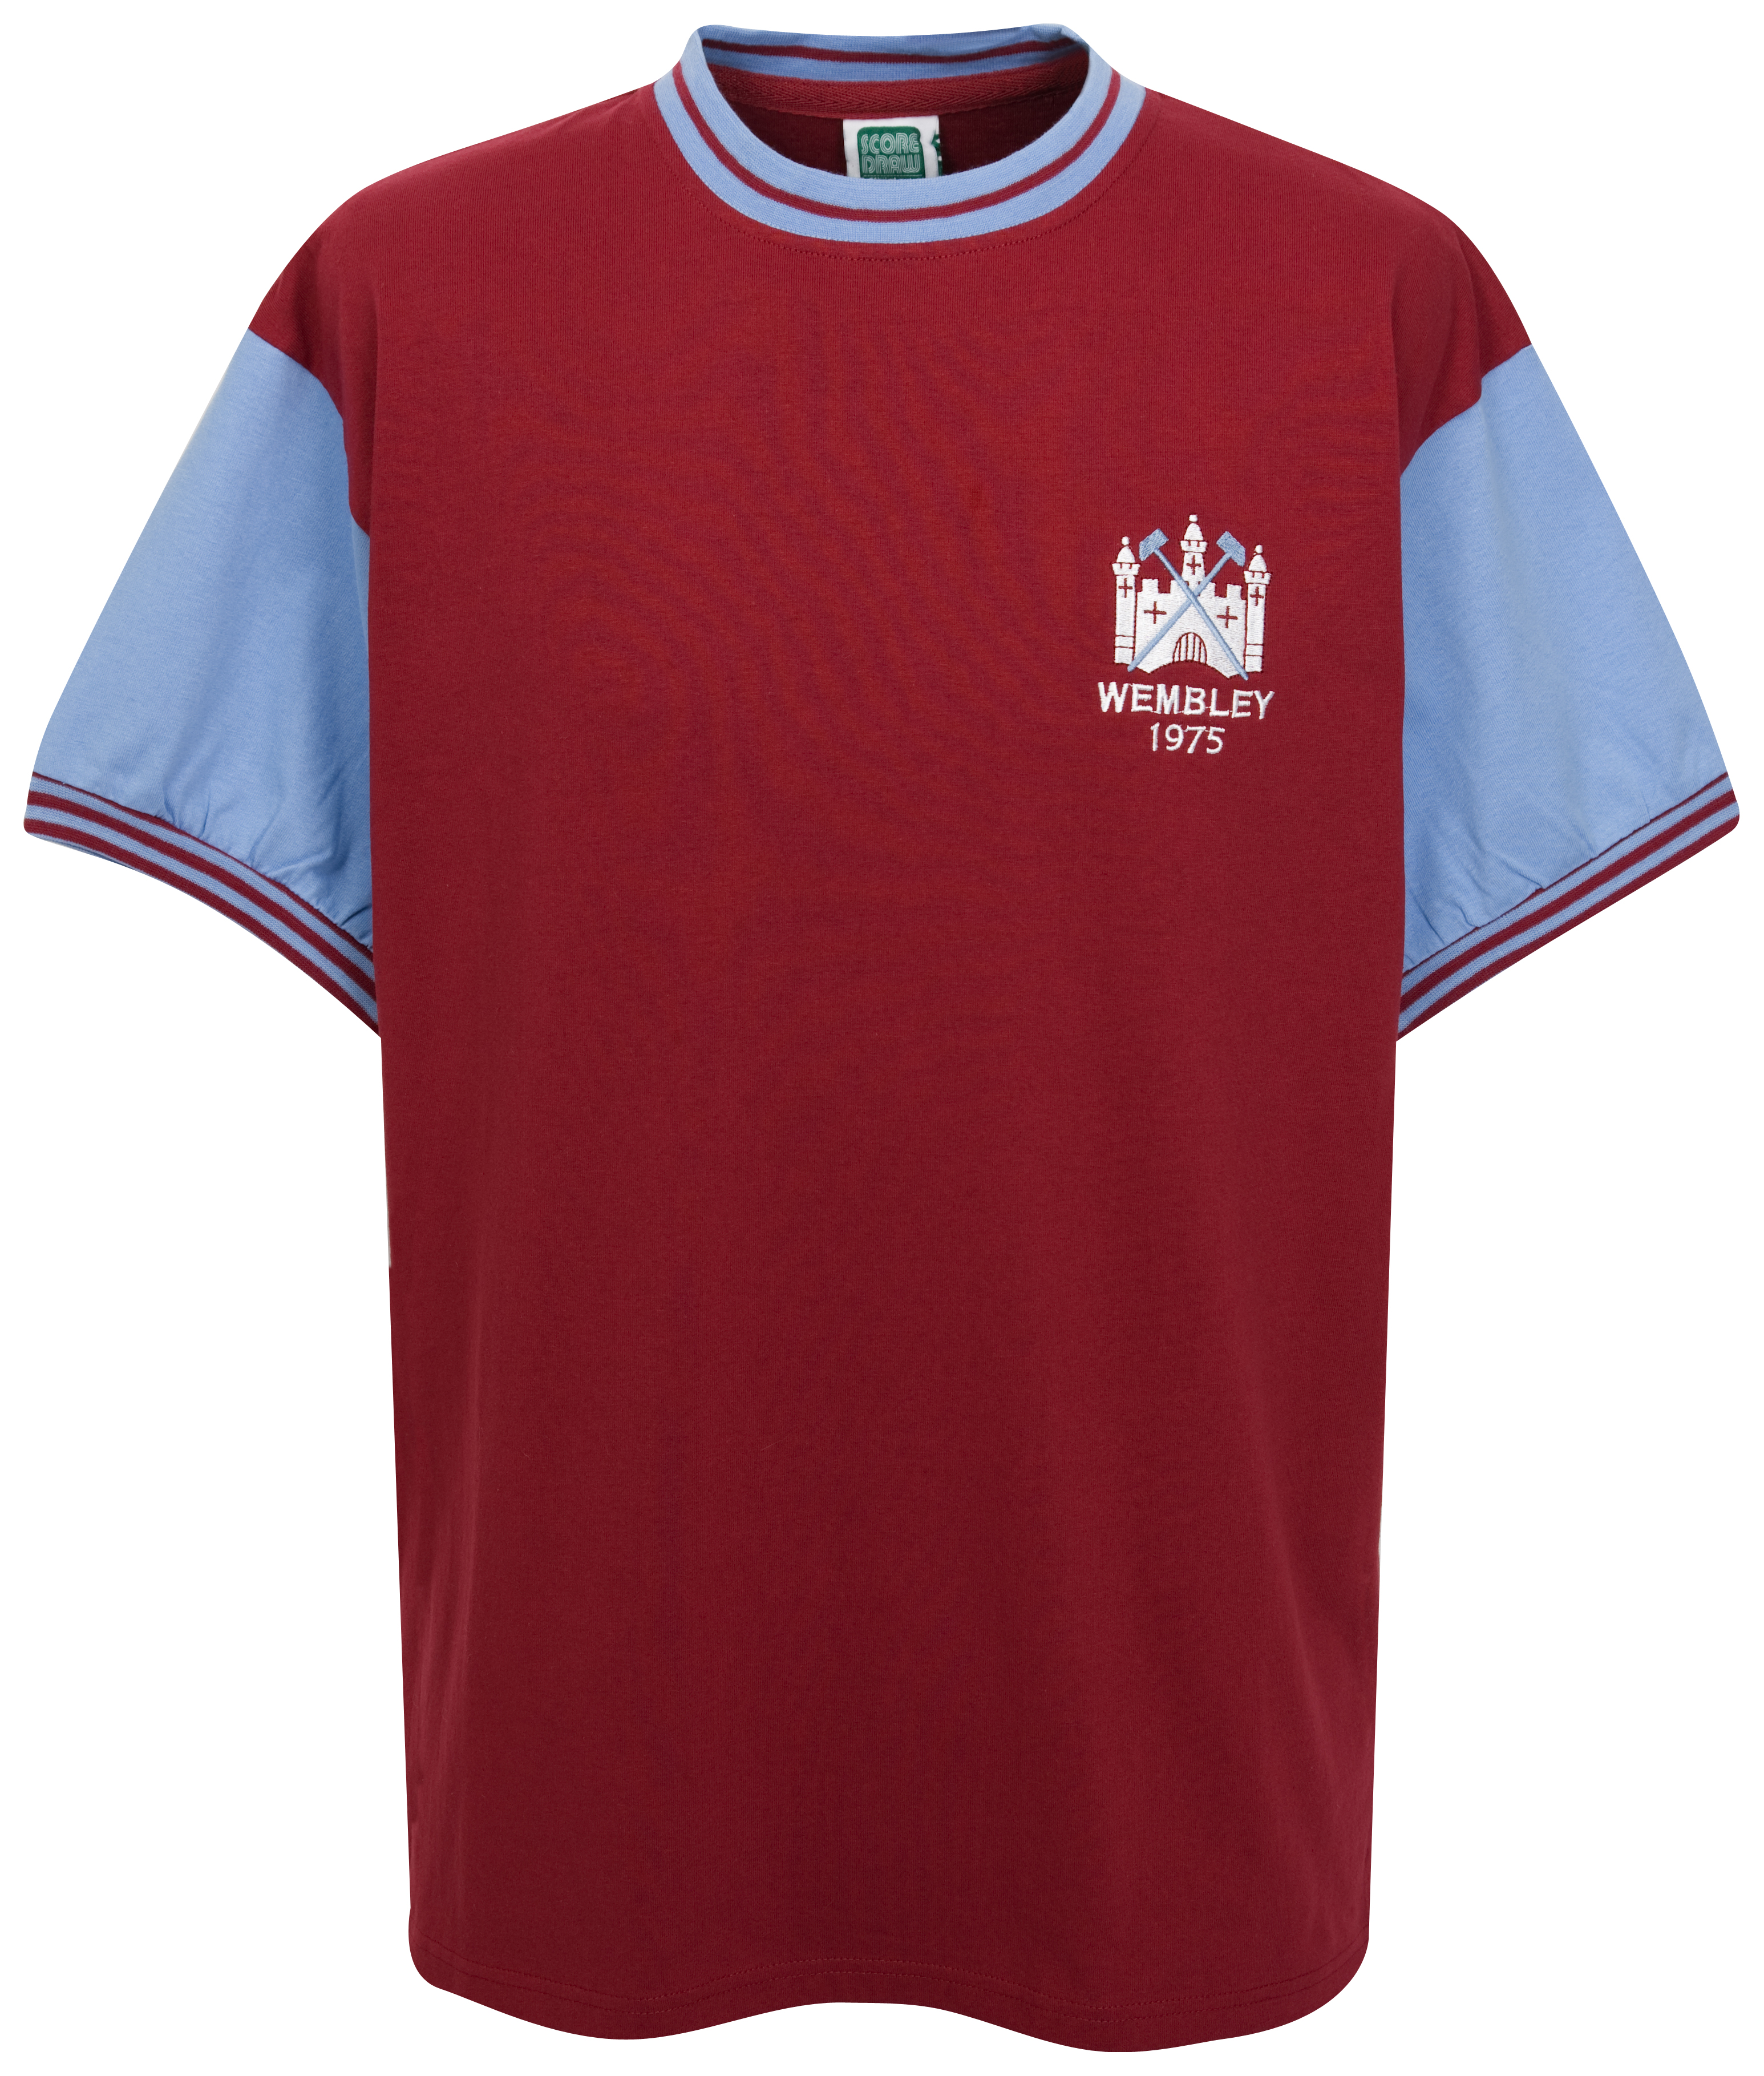 West Ham Utd 1975 FA Cup Final No.4 Shirt - Claret/Blue